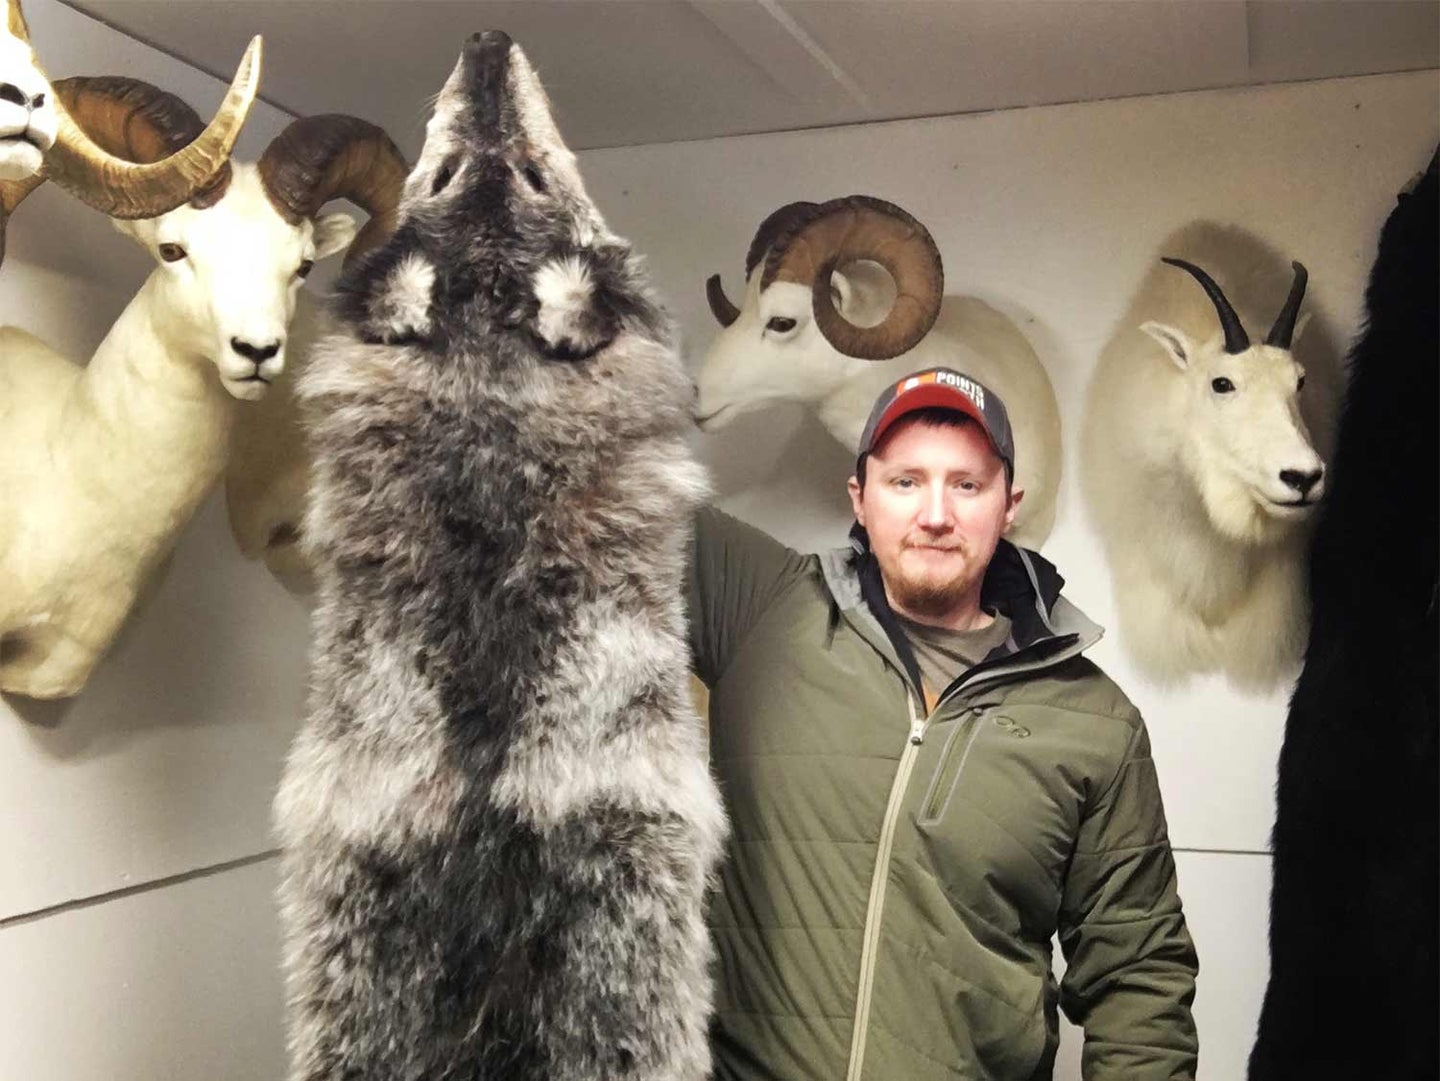 hunter holding up a large wolf pelt.